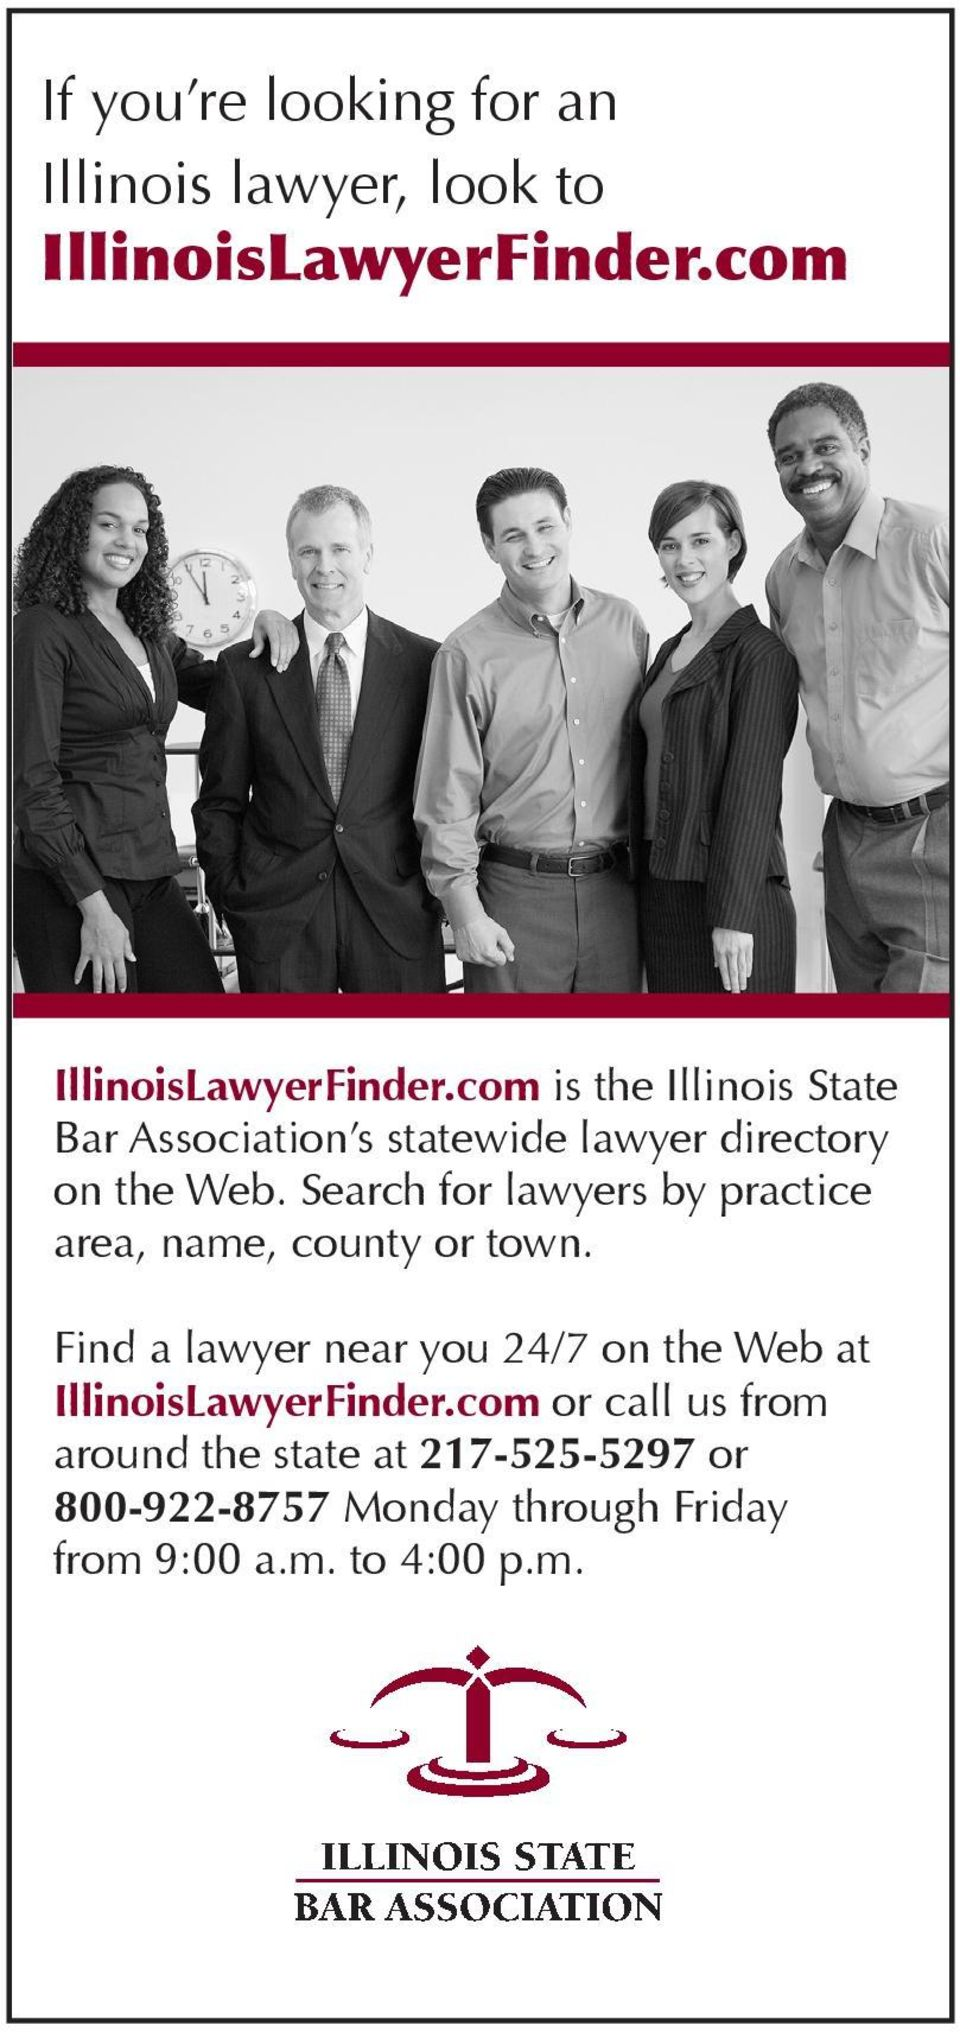 Search for lawyers by practice area, name, county or town.